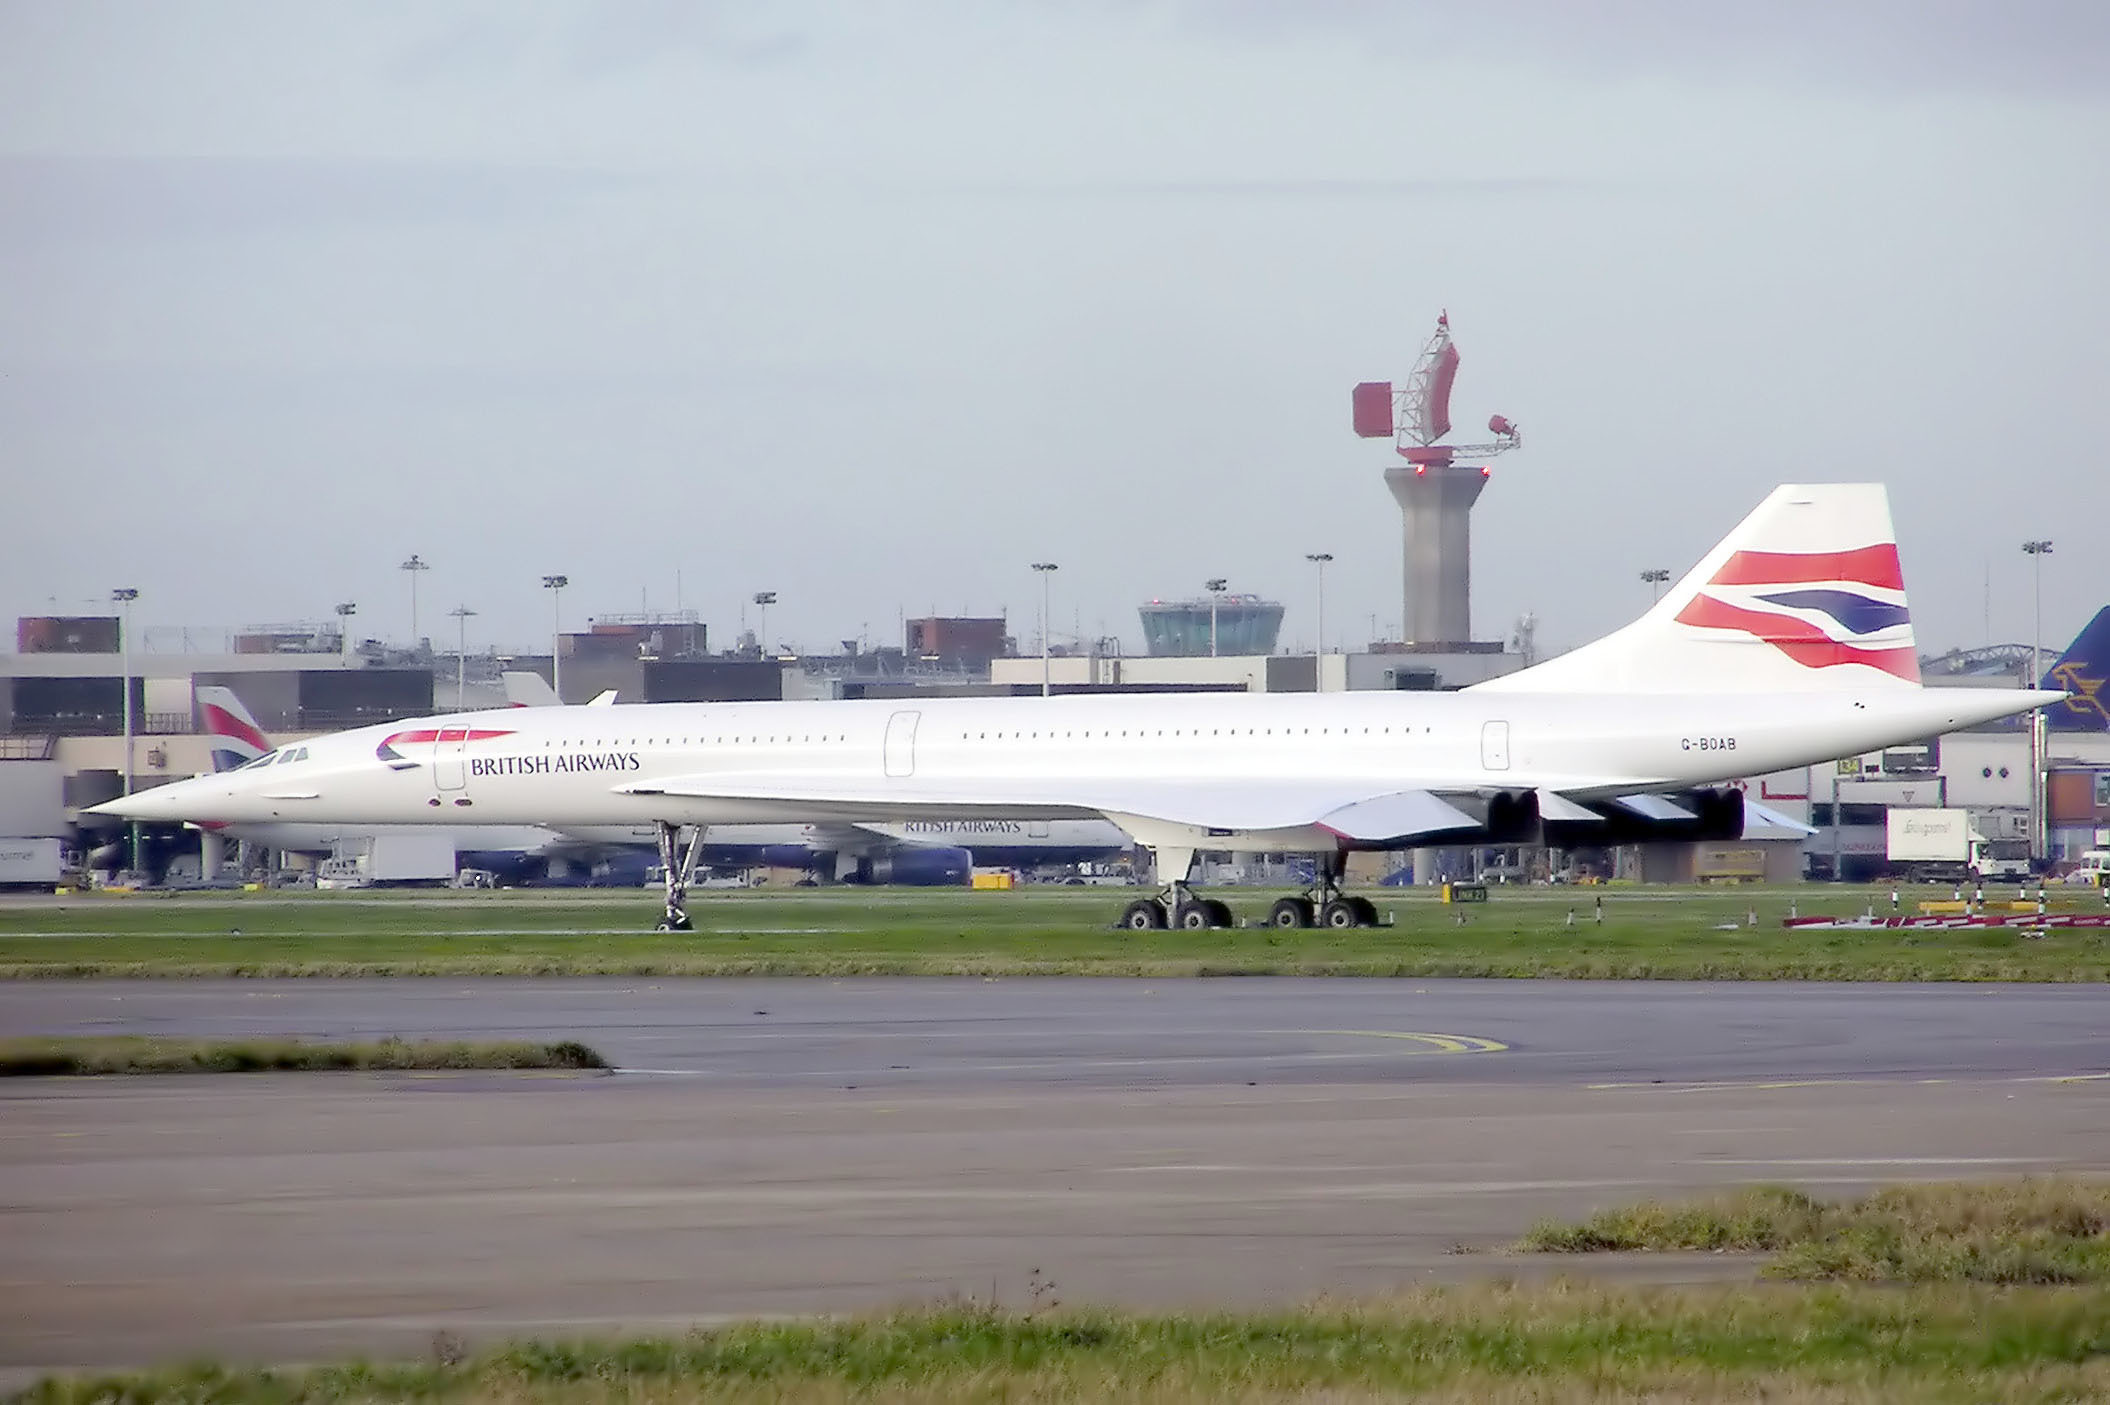 concorde boab heathrowvalid pointbut HD Wallpaper